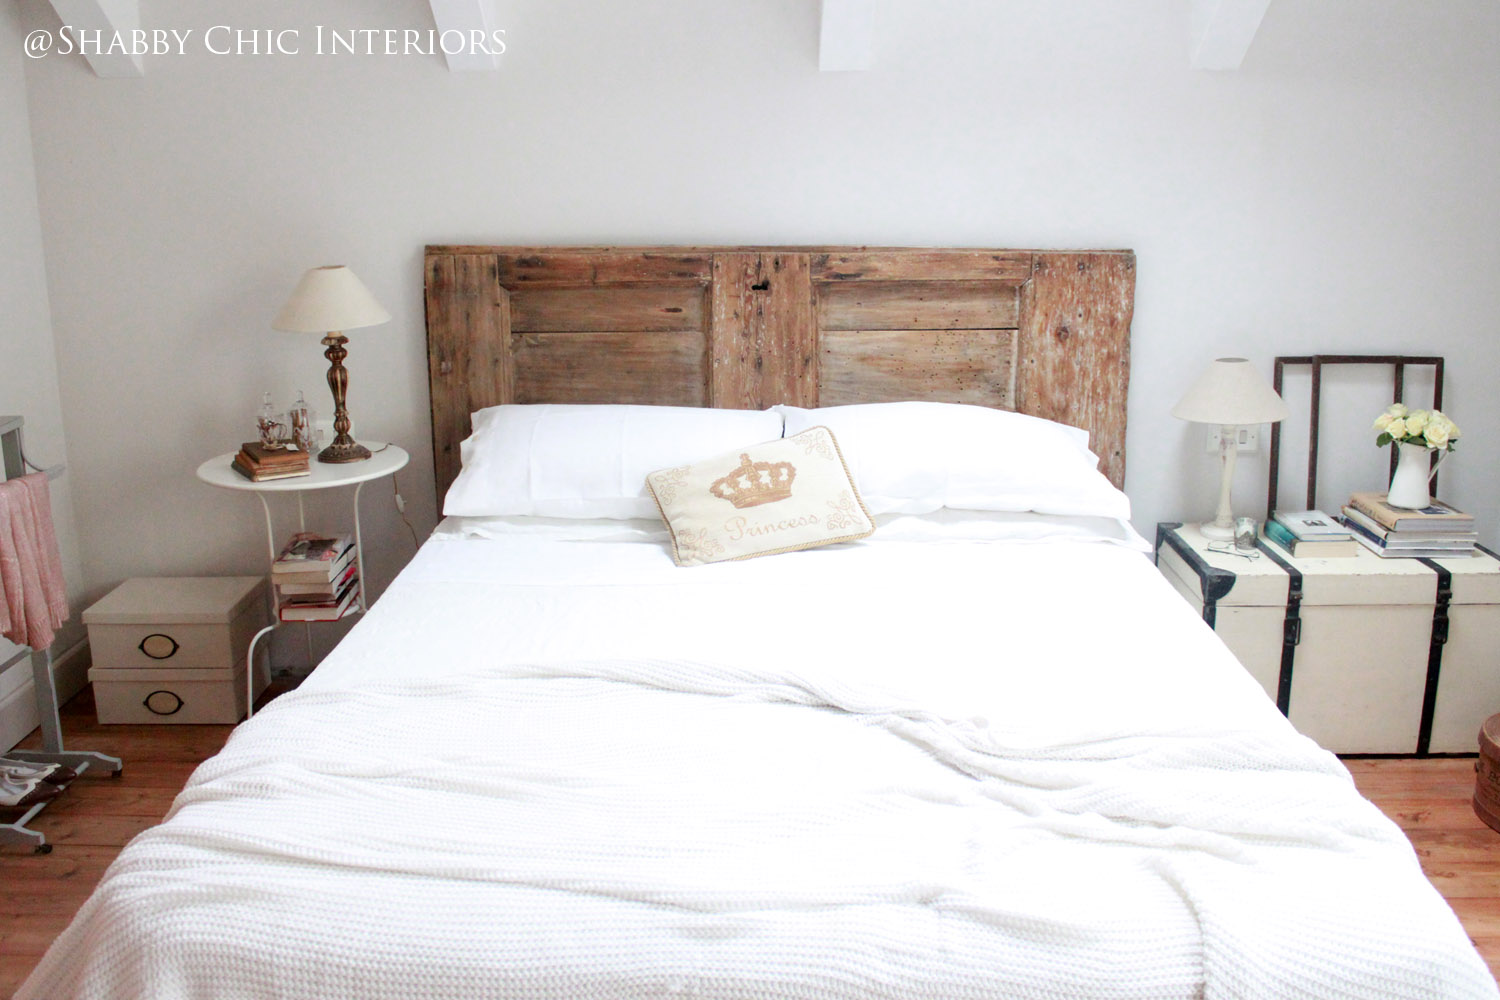 La mia camera da letto - Shabby Chic Interiors